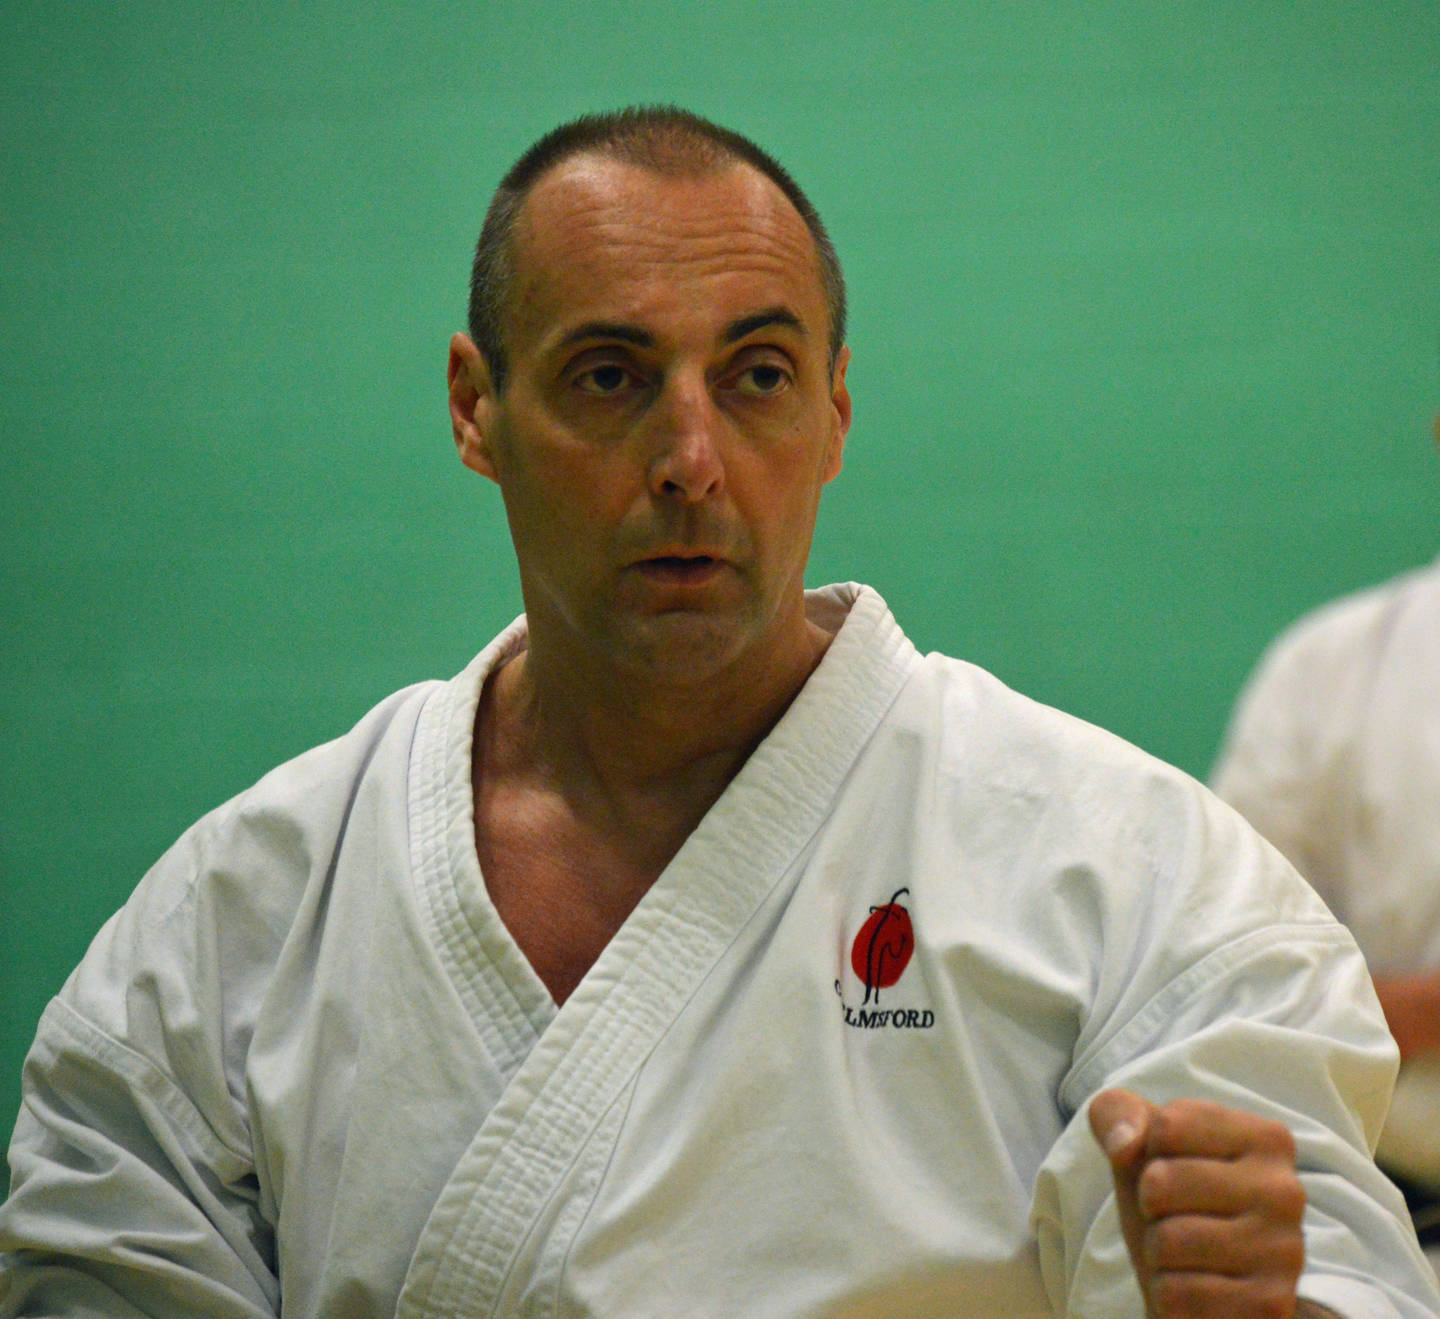 Richard Naylor-Jones practising karate